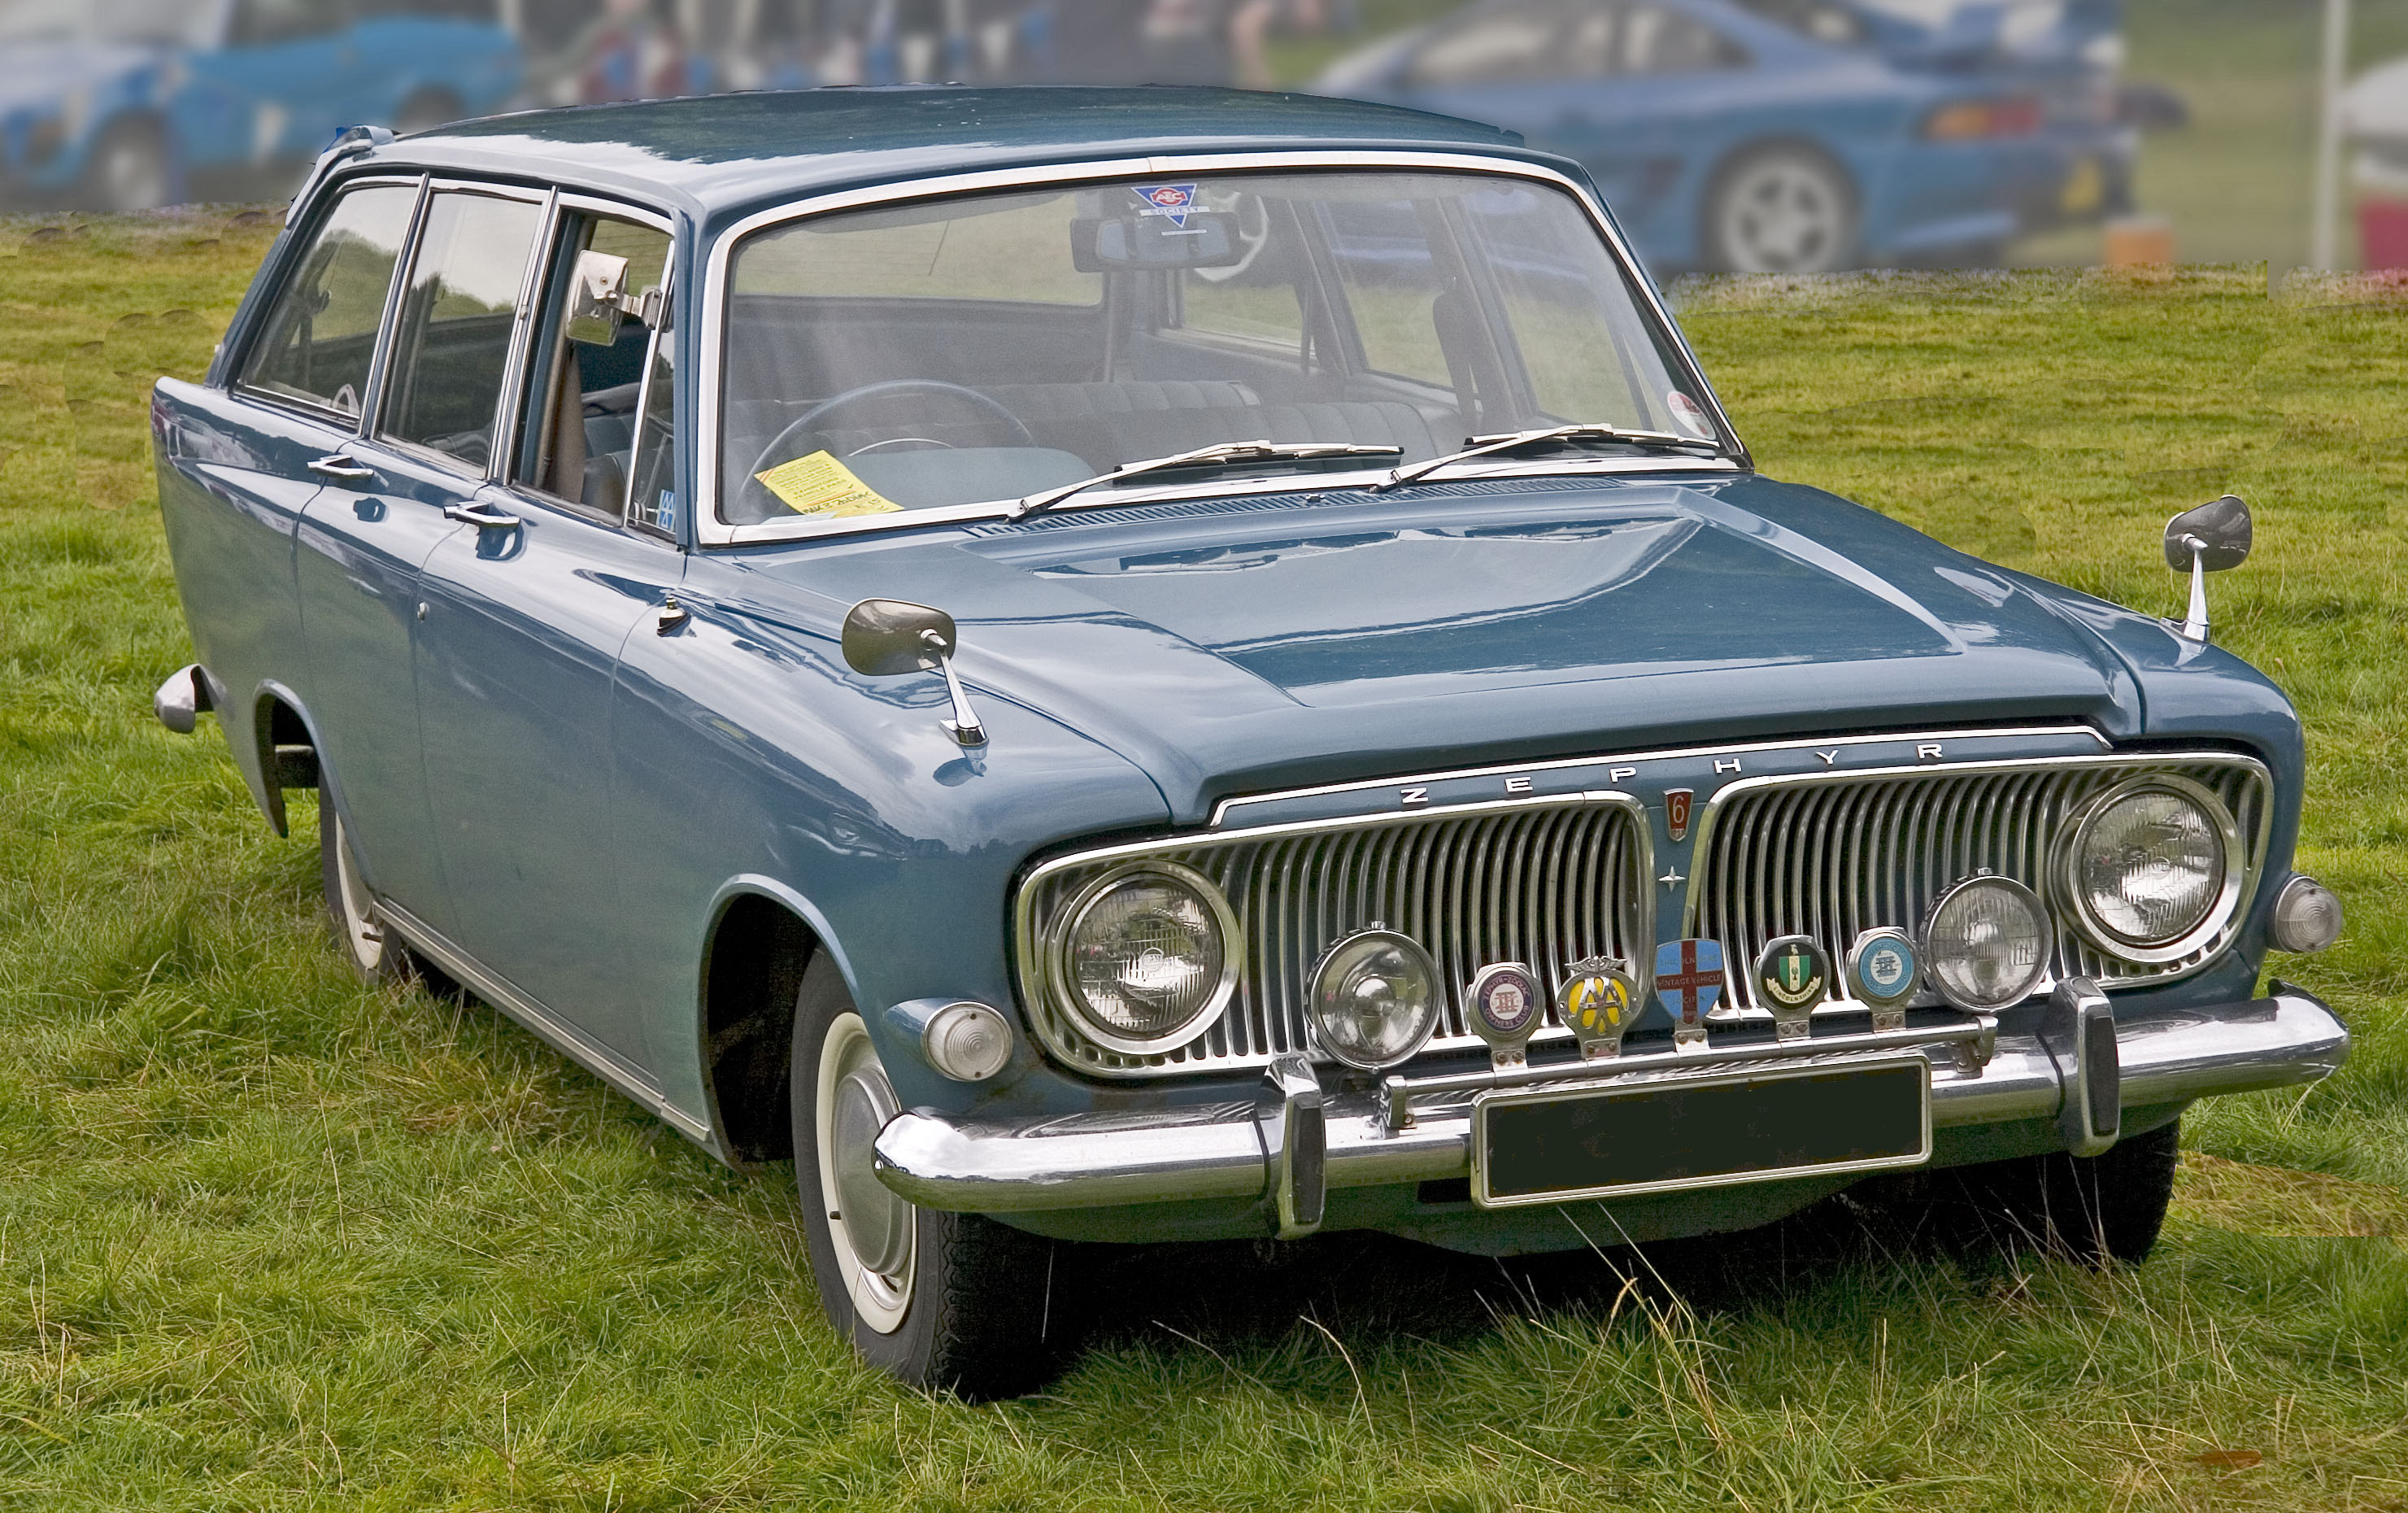 1966 Ford Zephyr Estate - CarsAddiction.com